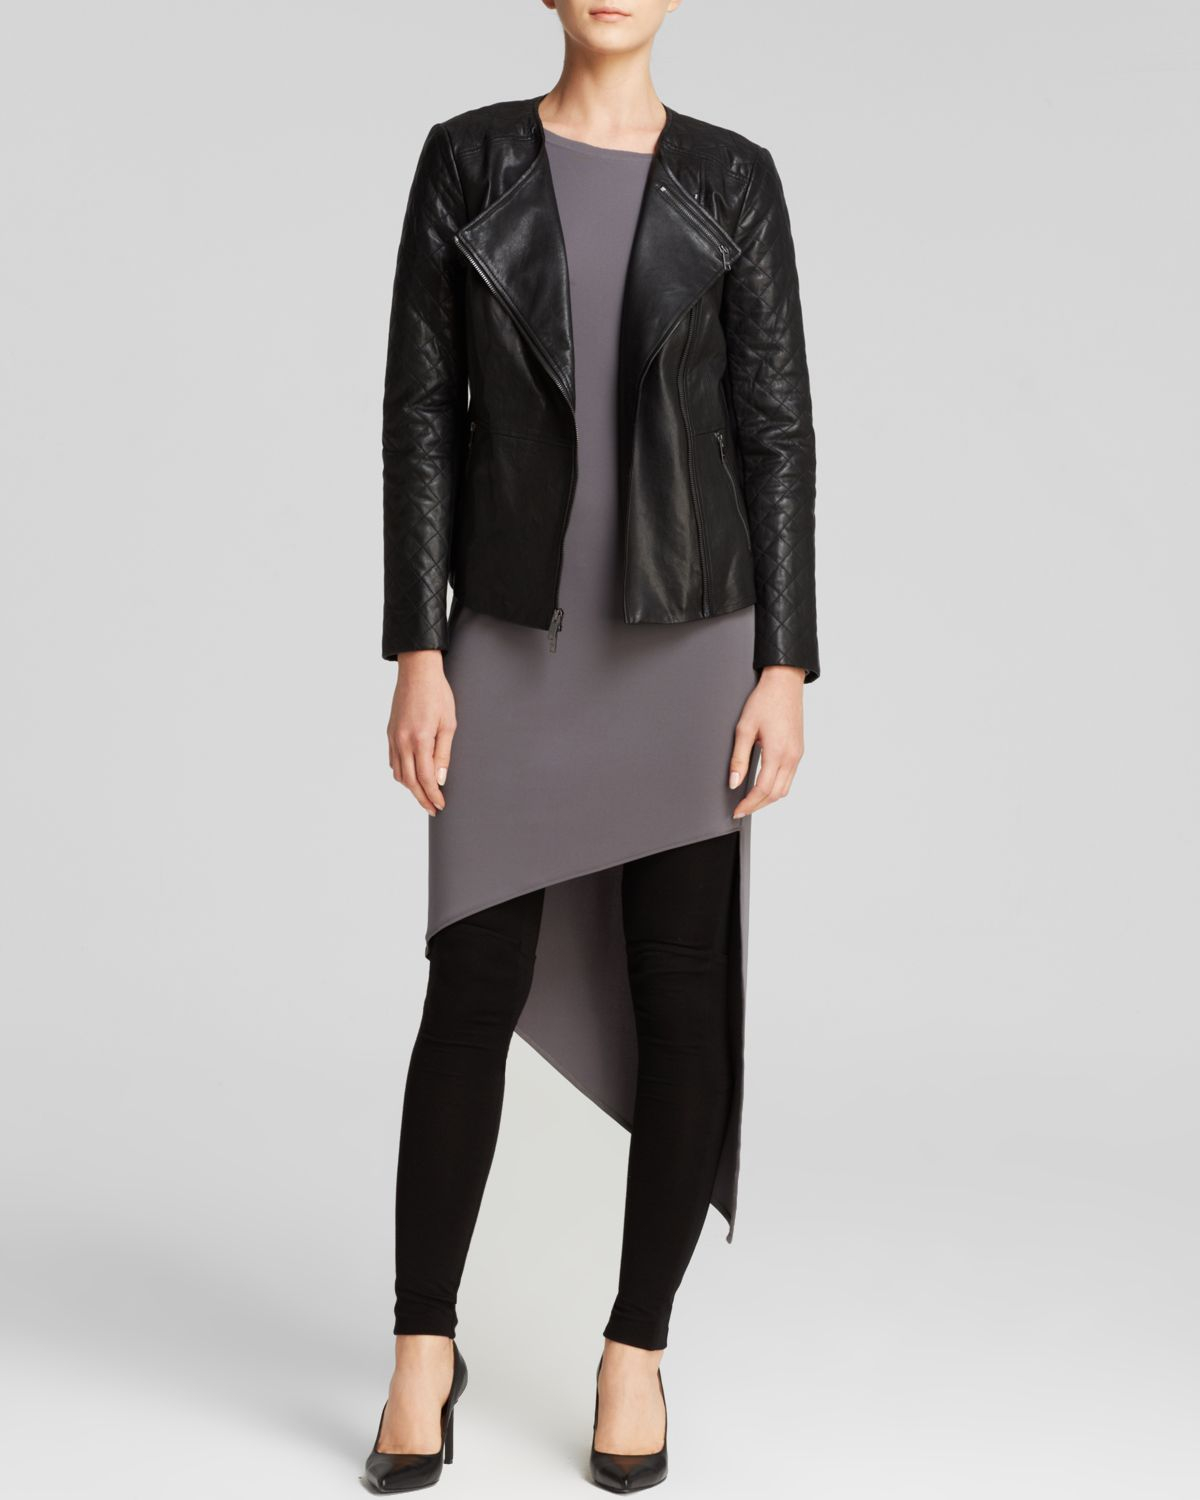 Dkny leather jackets